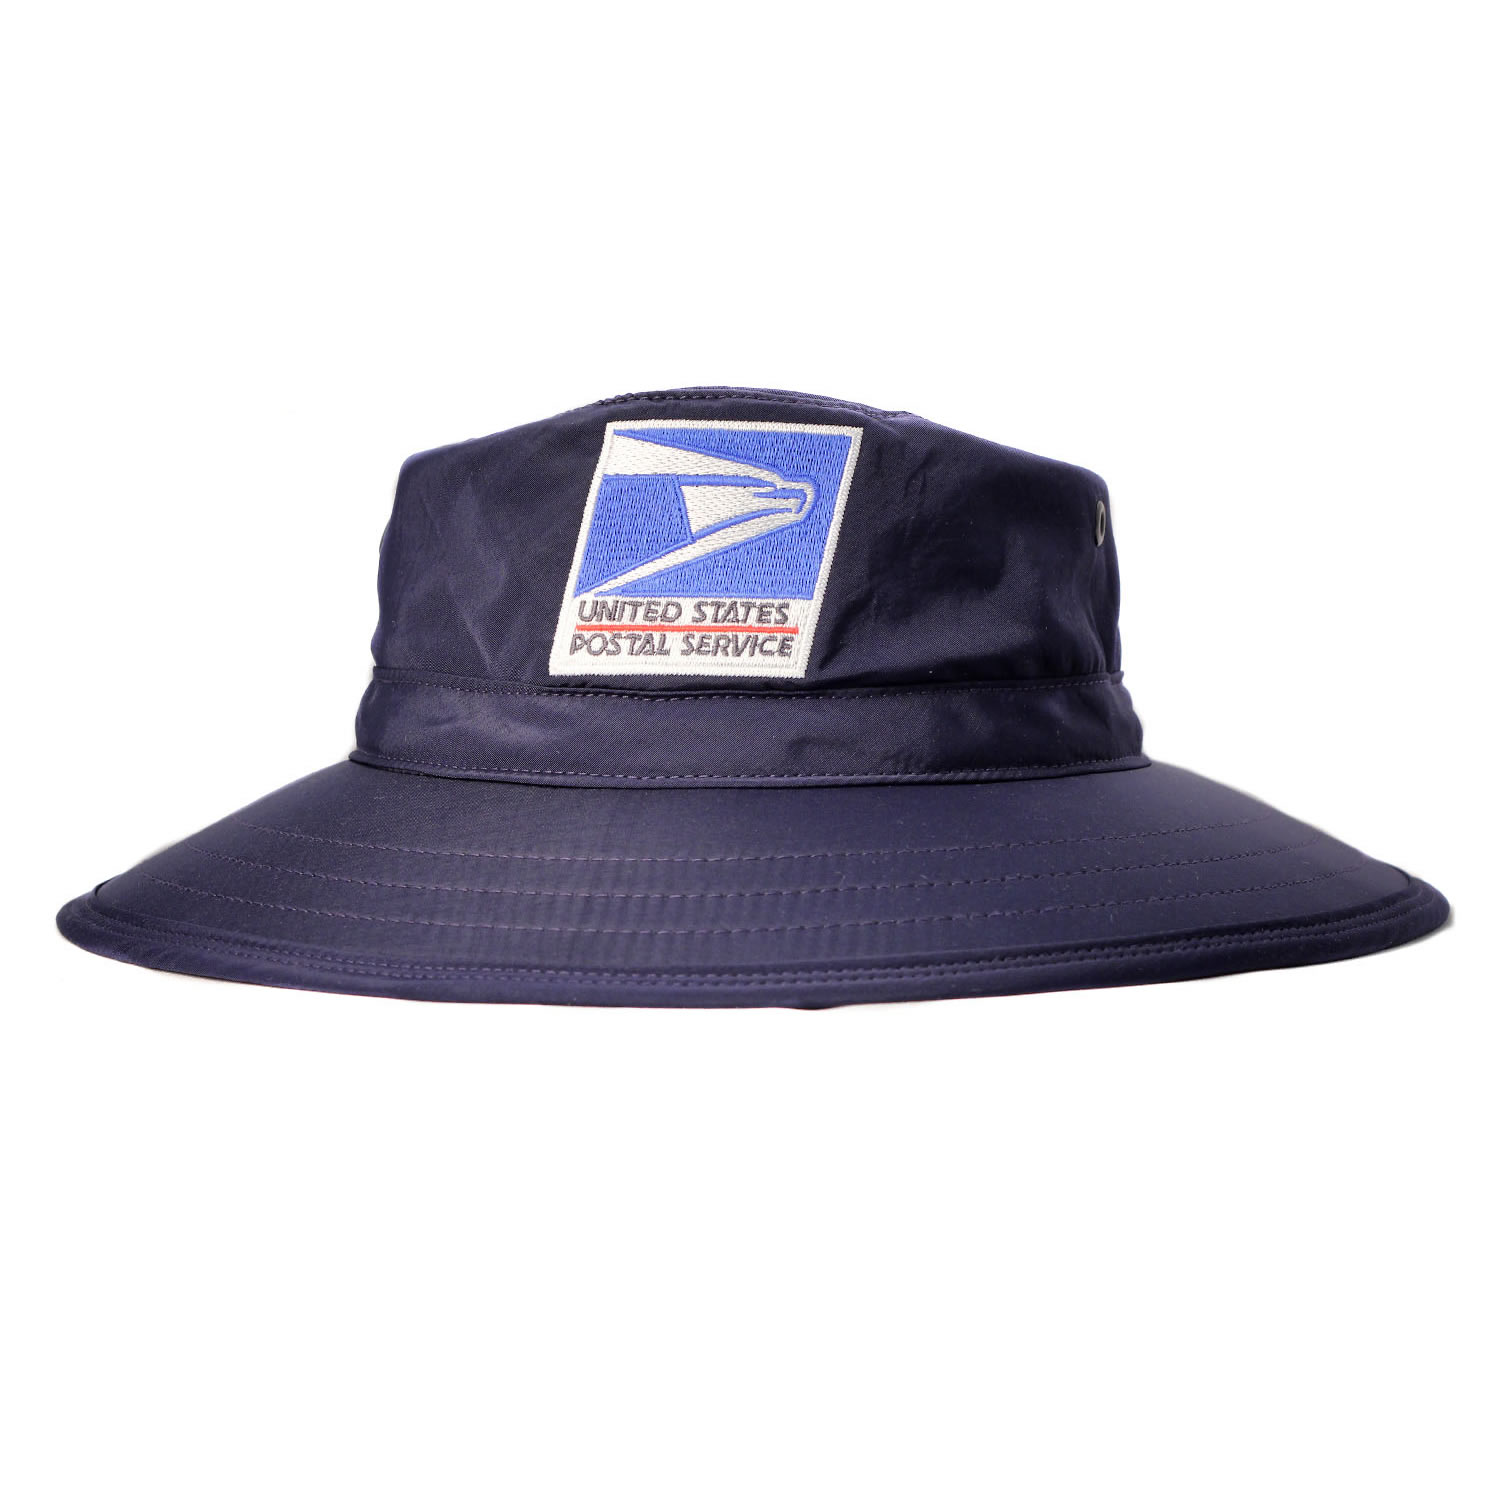 Sun Hat for Letter Carriers and MVS Operators